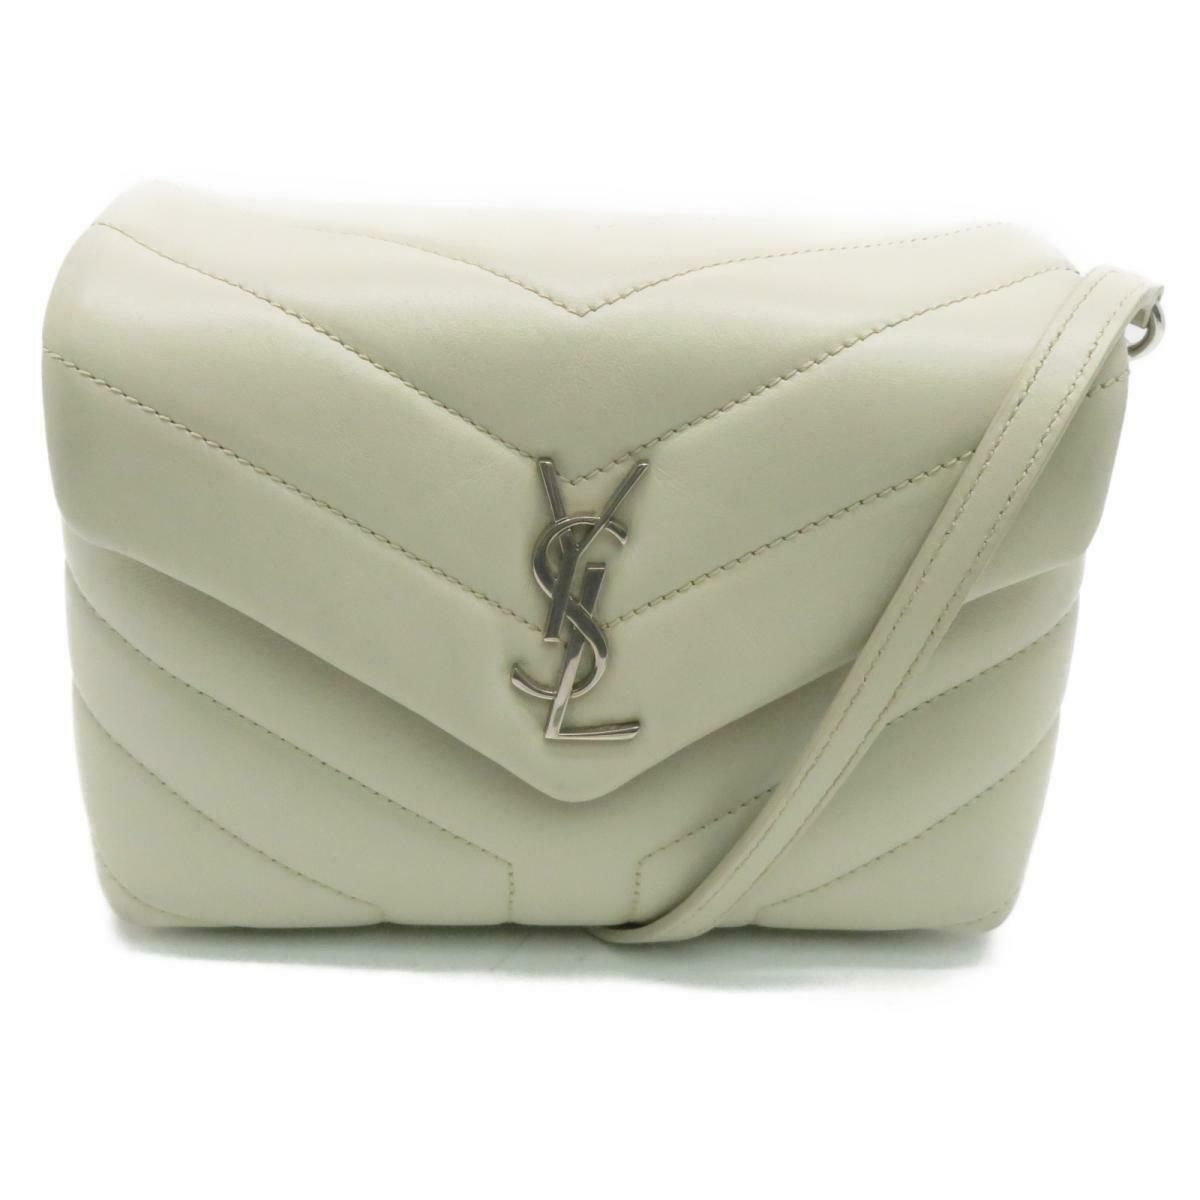 SAINT LAURENT Calfskin Y Quilted Monogram Toy Loulou Chain Satchel Ivory